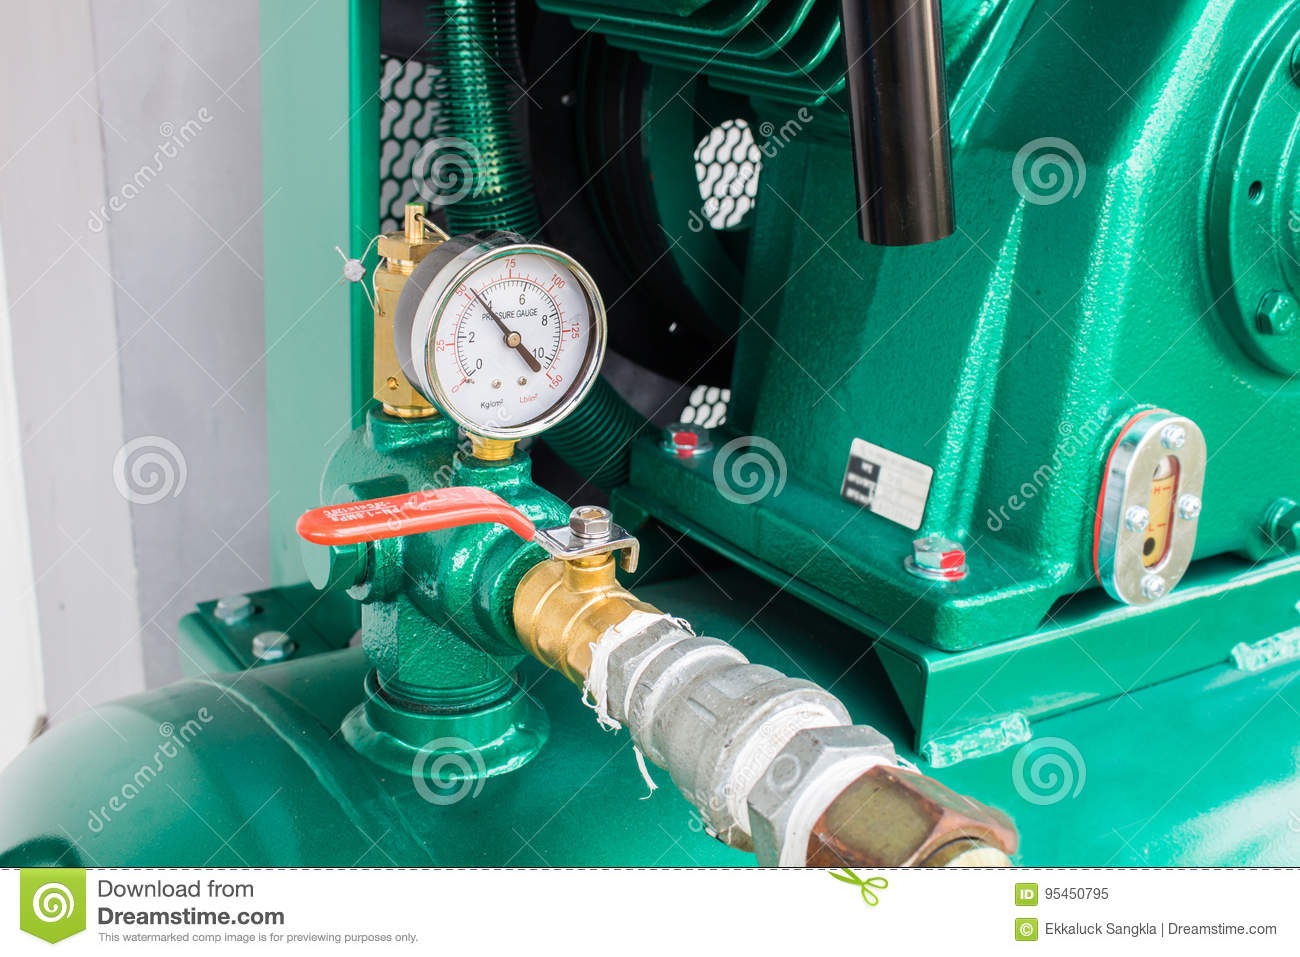 The Pressure Gauge, In The Pneumatic System. Stock Image - Image of ...